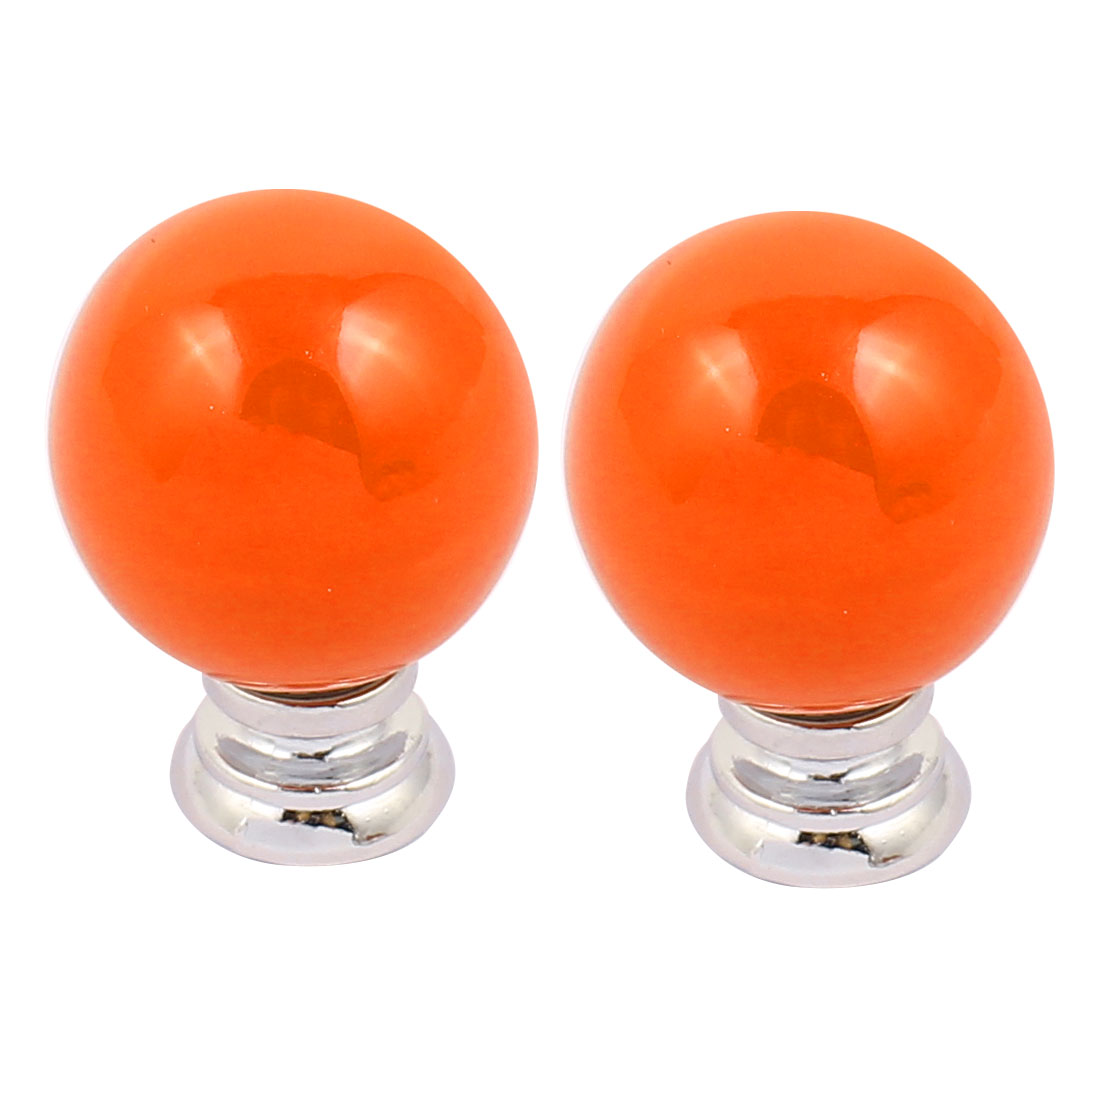 Cabinet Wardrobe Drawer Door Pull Cherry Shape Ceramic Knobs Handle Orange 2pcs